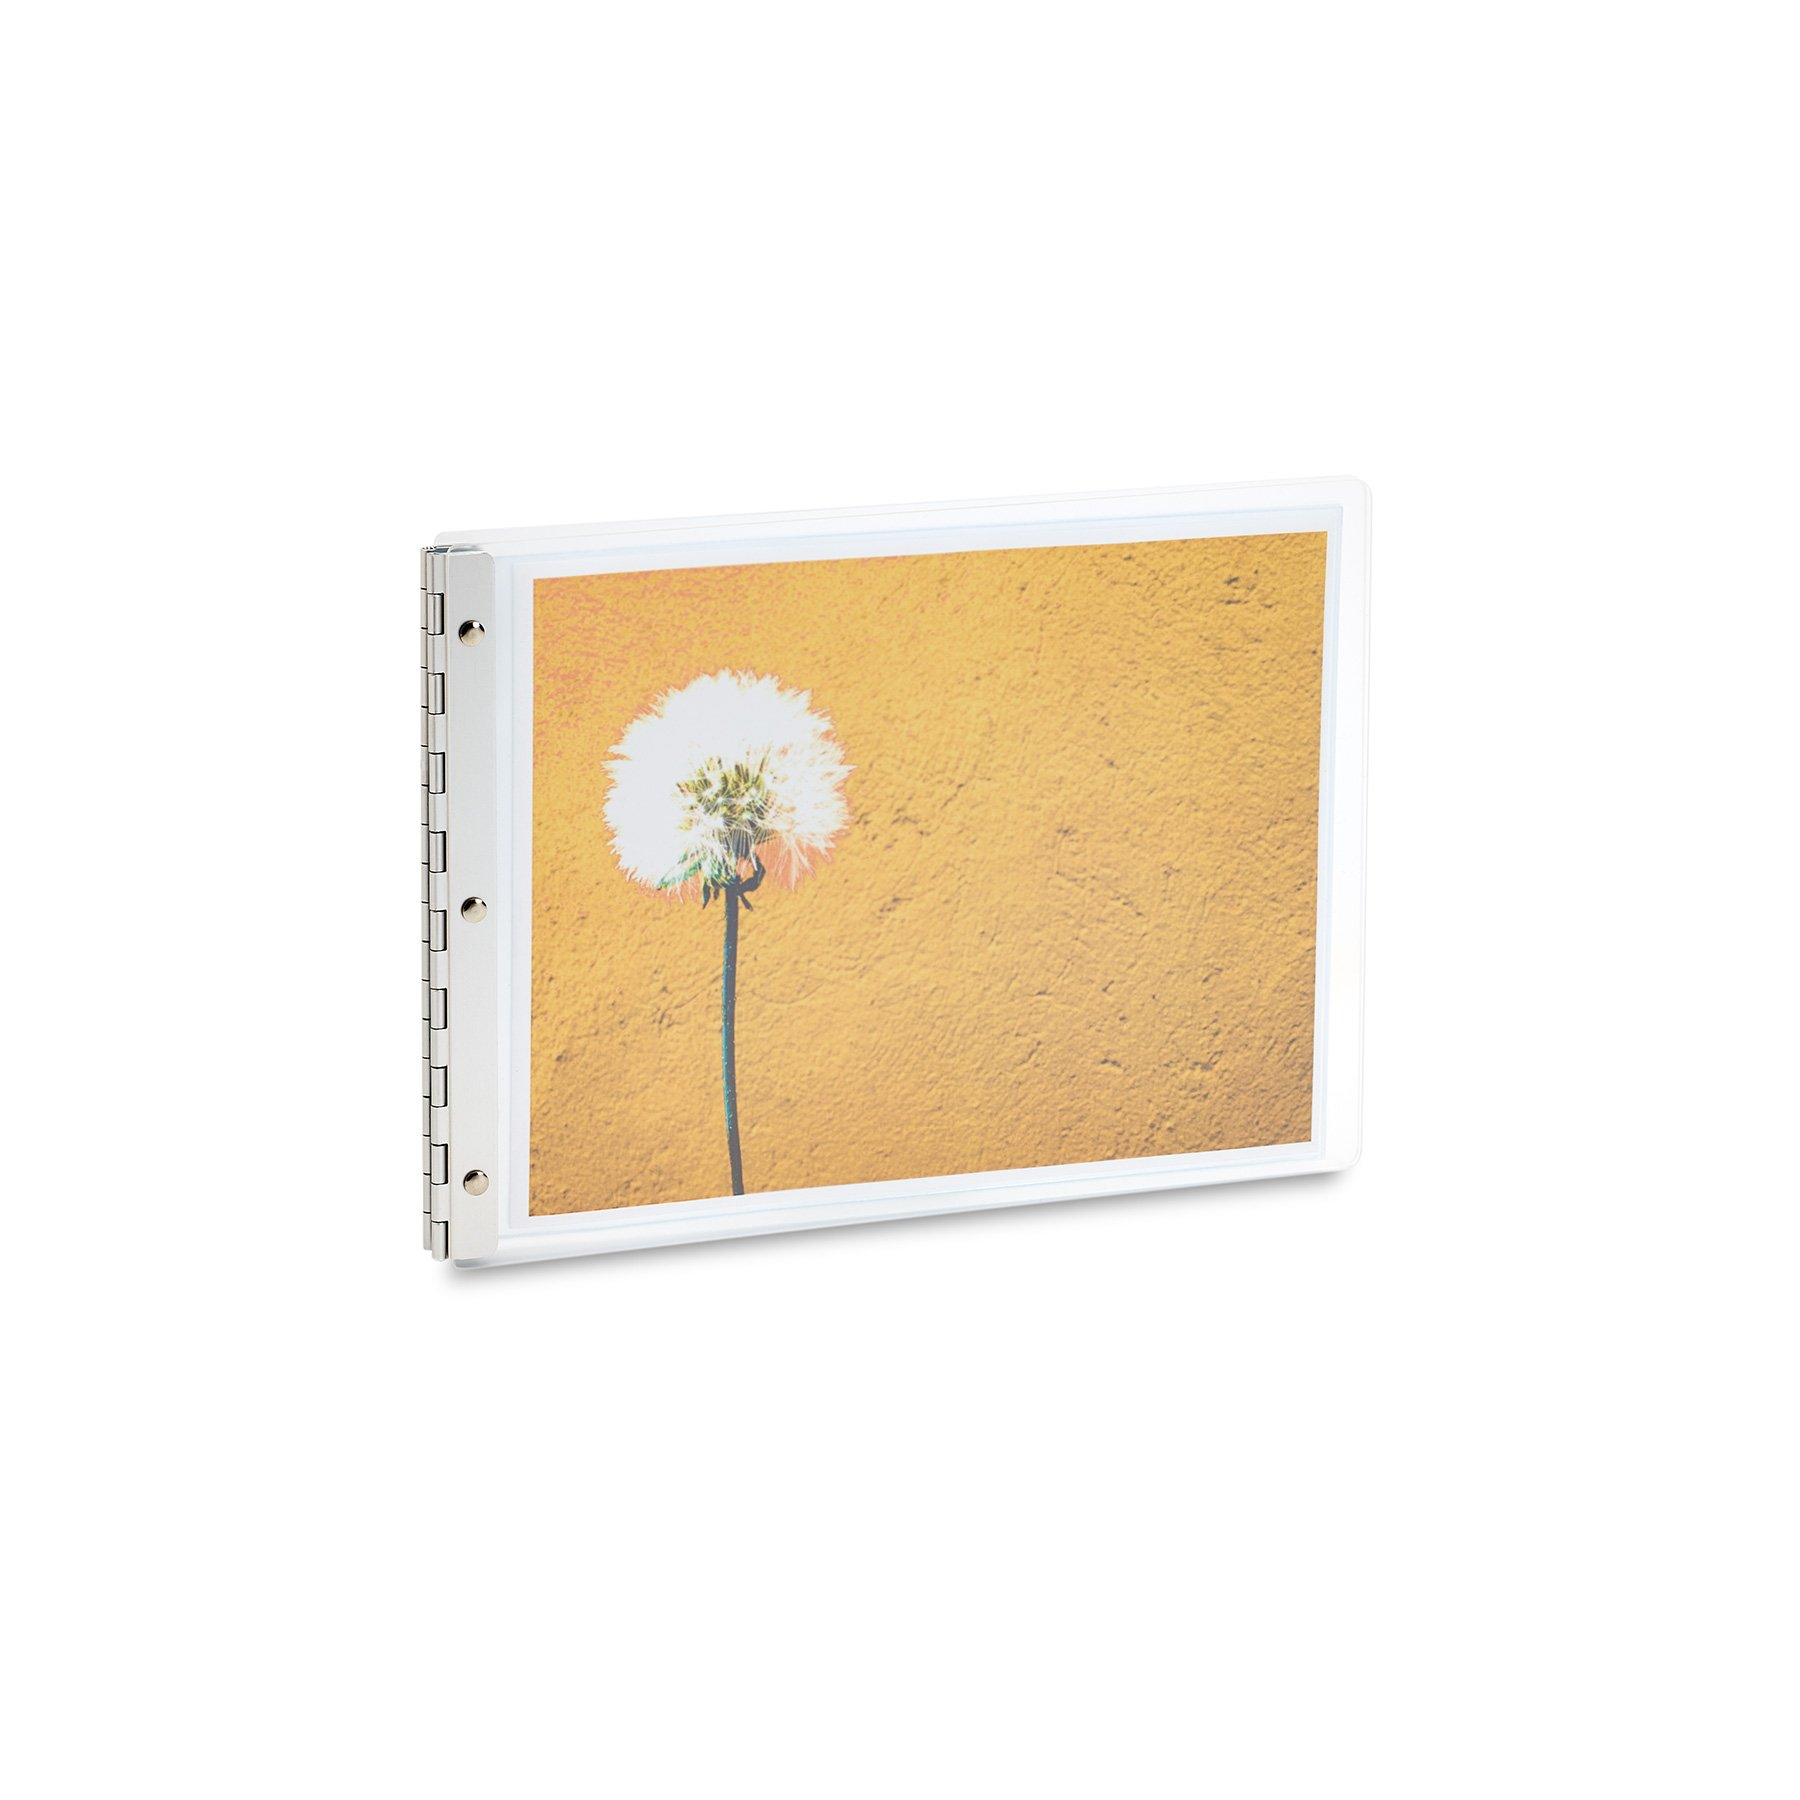 Pina Zangaro Flexx Ice Screwpost Binder, 8.5x11 Landscape (34948) by Pina Zangaro